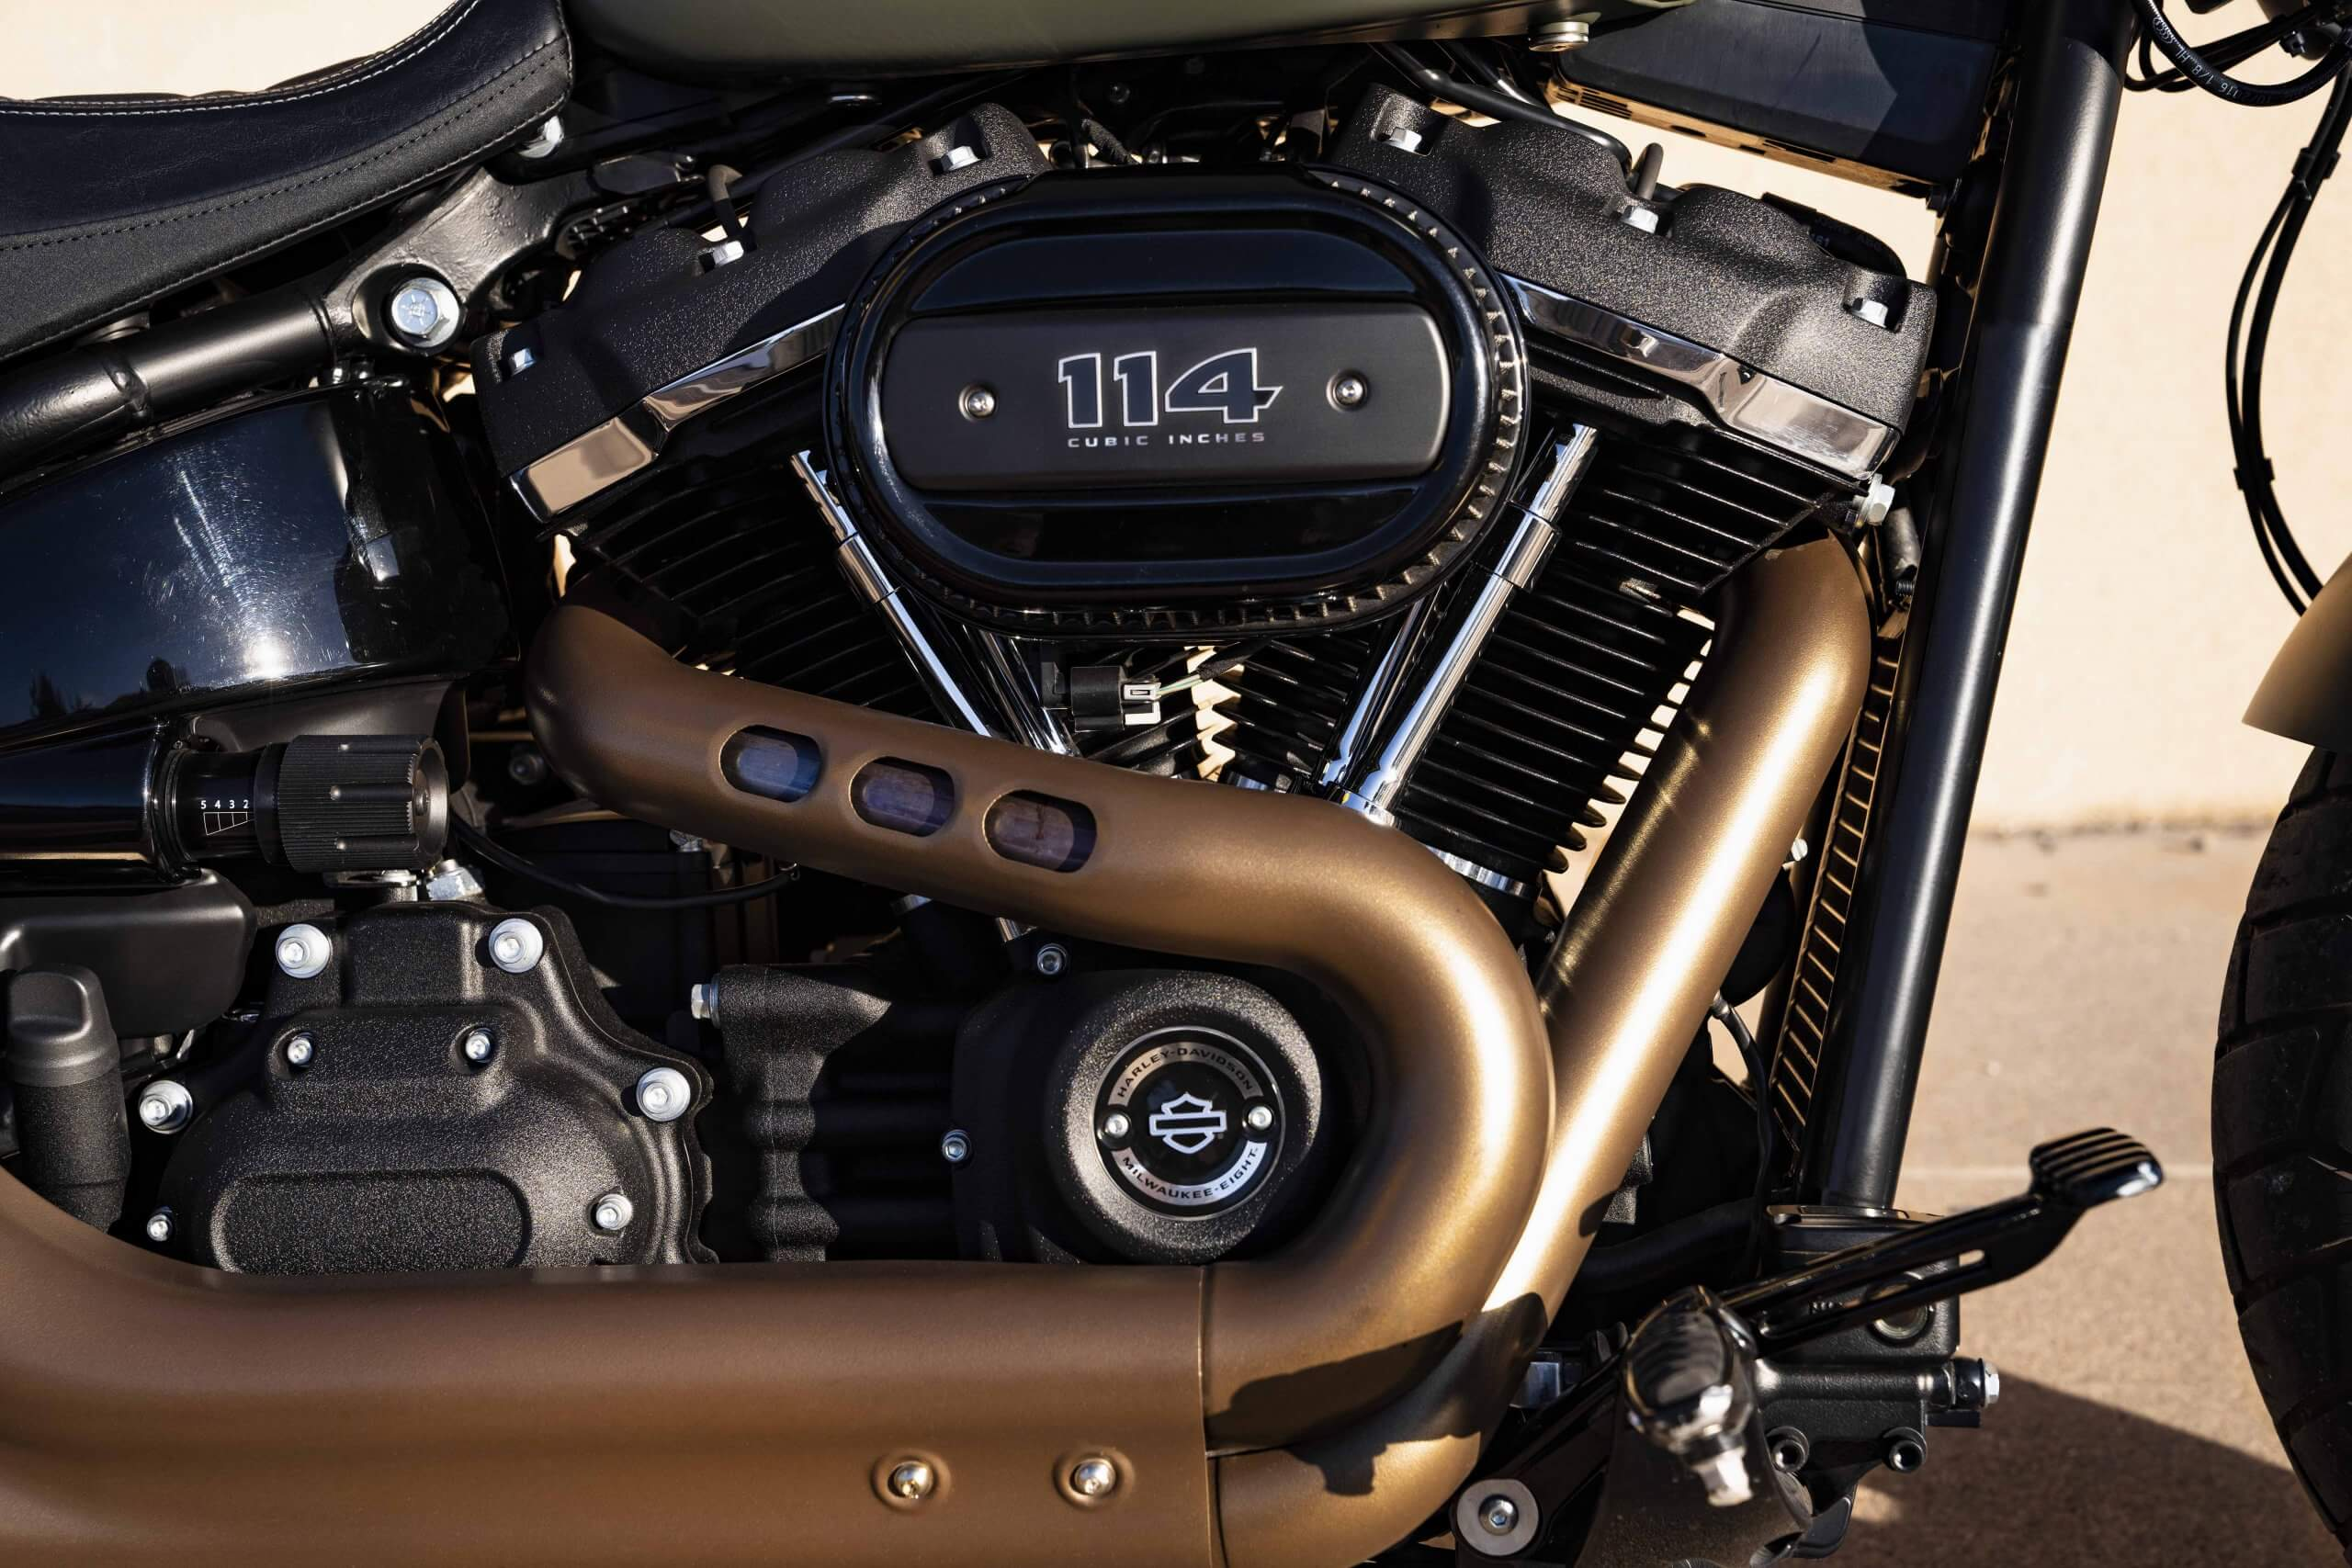 Milwaukee-Eight® 114 V-Twin engine and custom-styled exhaust